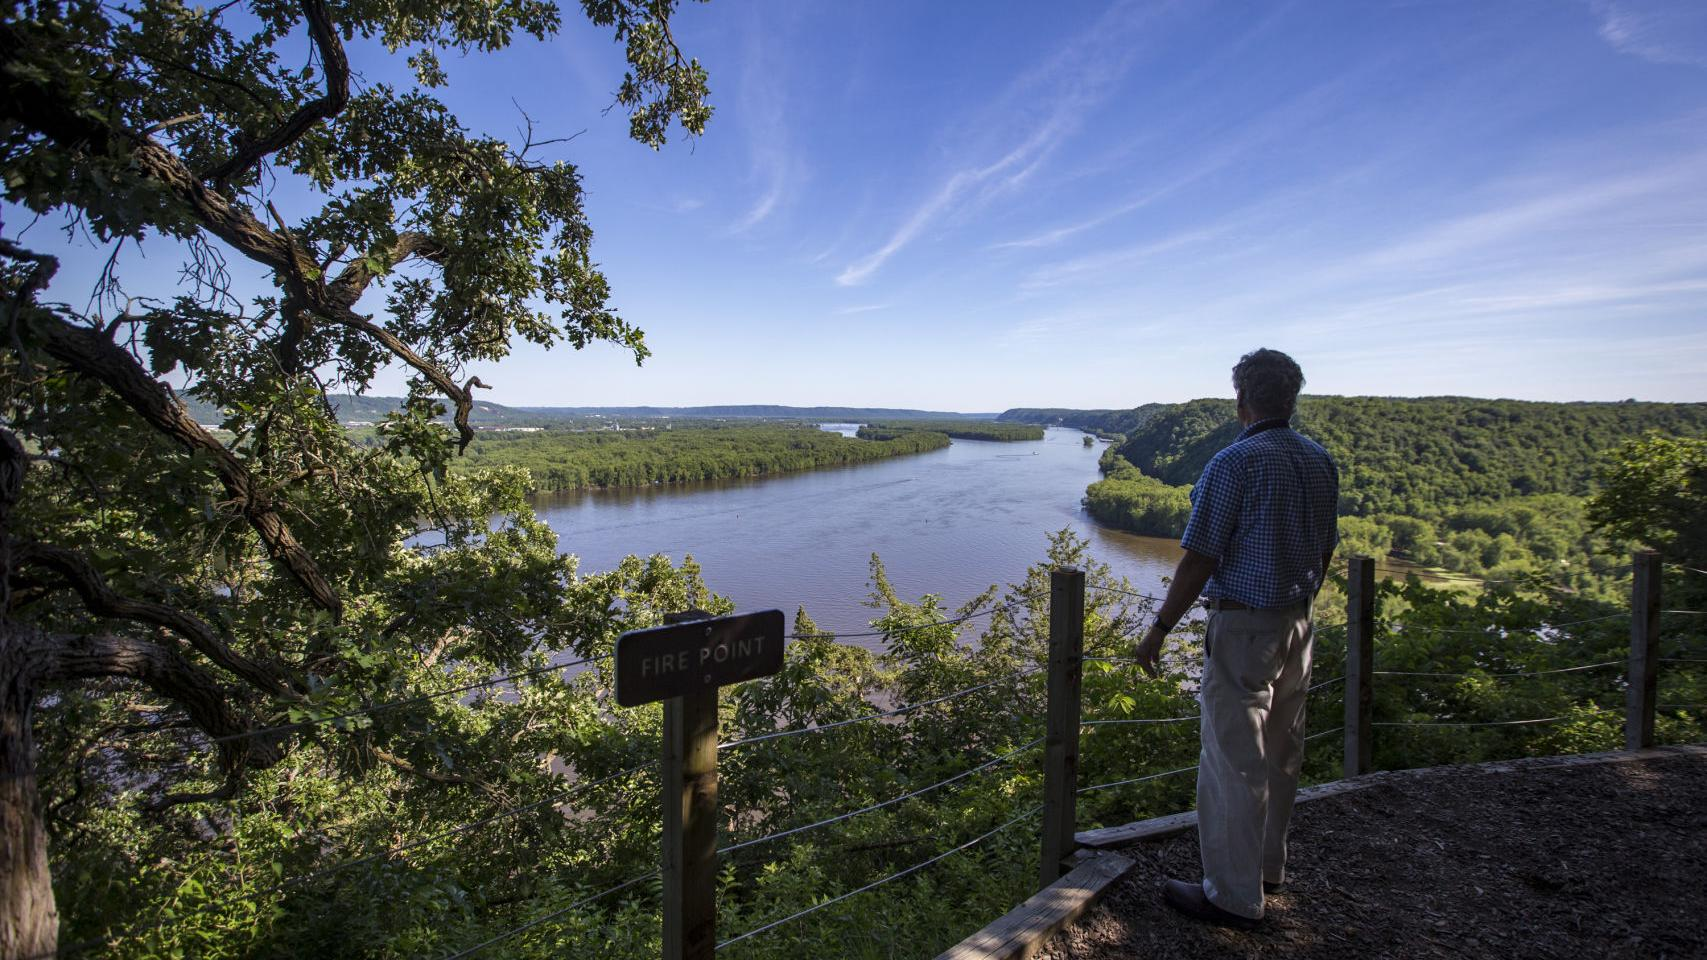 Looking to travel? New Iowa app lists fun spots from breweries to bison wallows